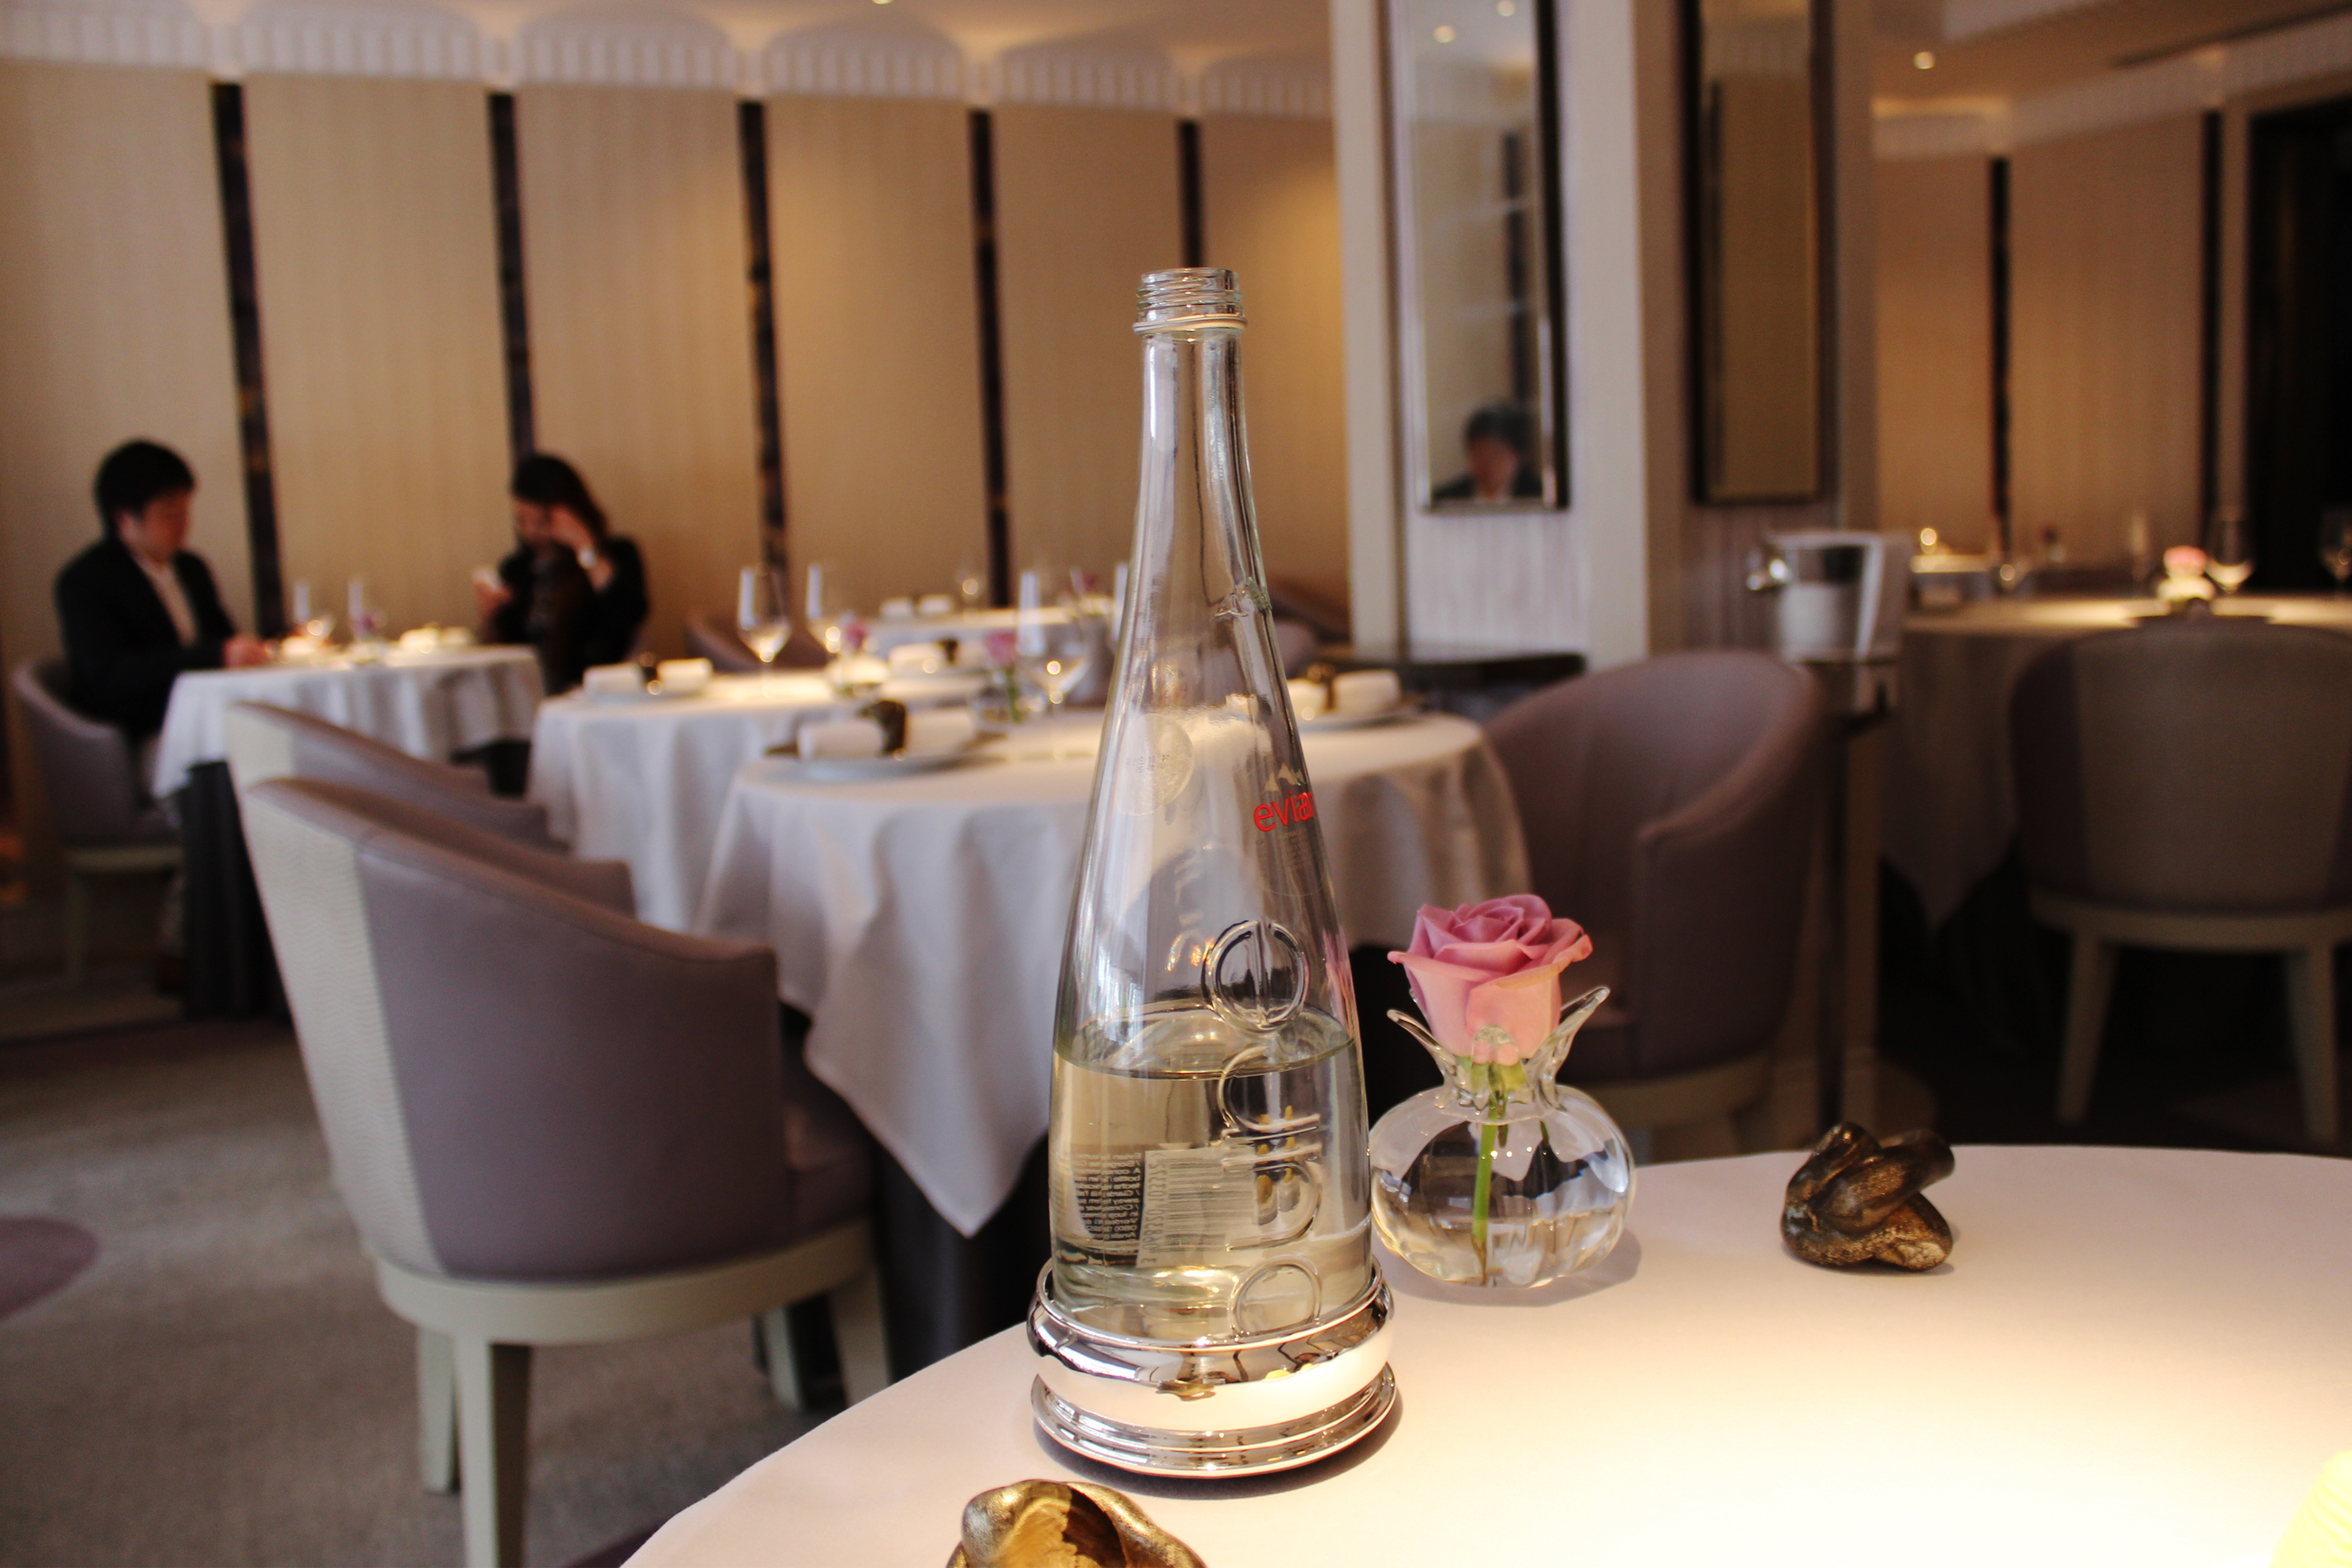 A gorgeous lunch at restaurant gordon ramsay in chelsea